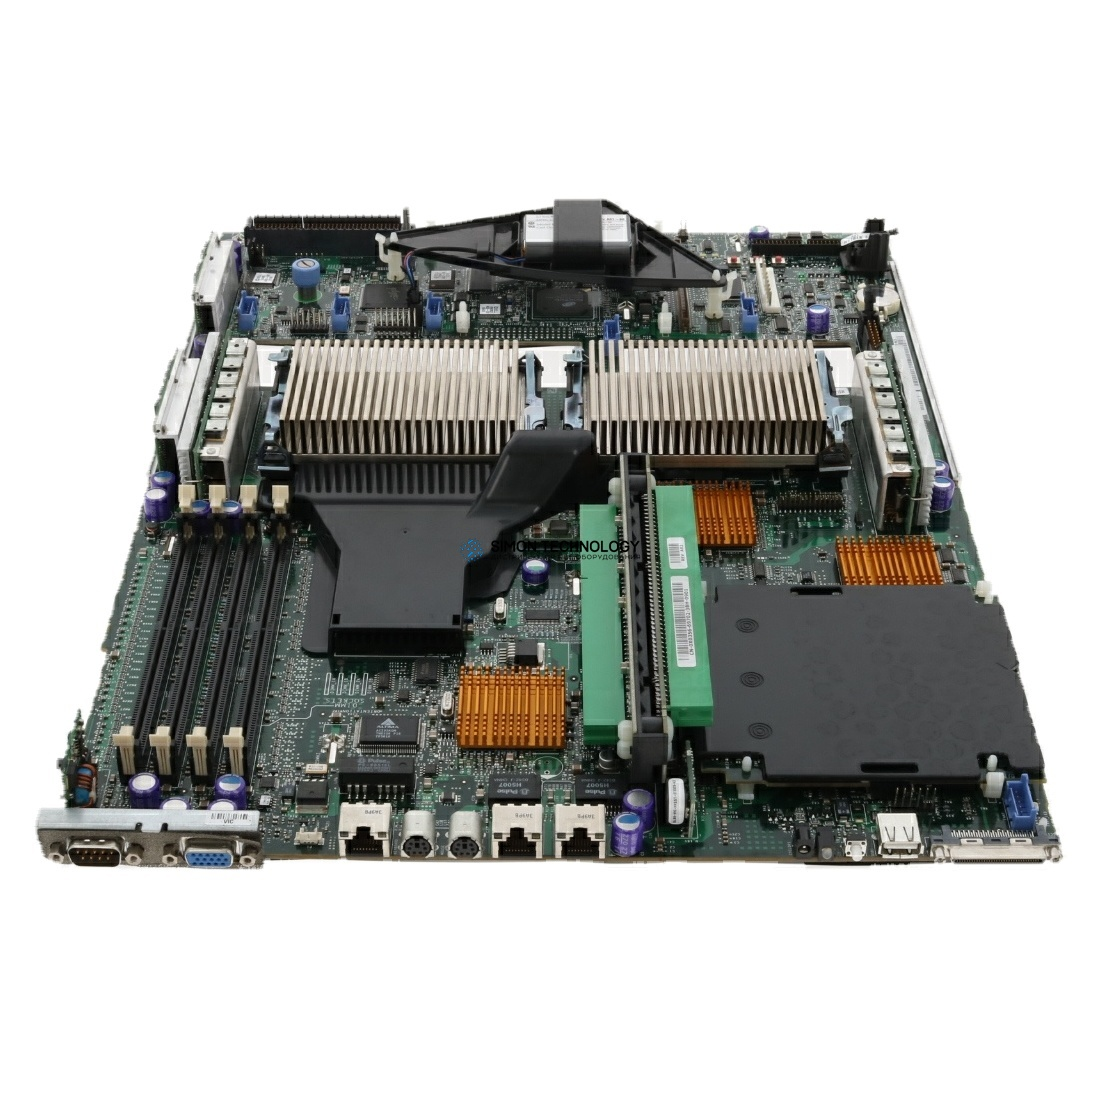 Материнская плата Dell PowerEdge 1750 3x3.5 J3014 Ask for custom qoute (PE1750-LFF-3-J3014)